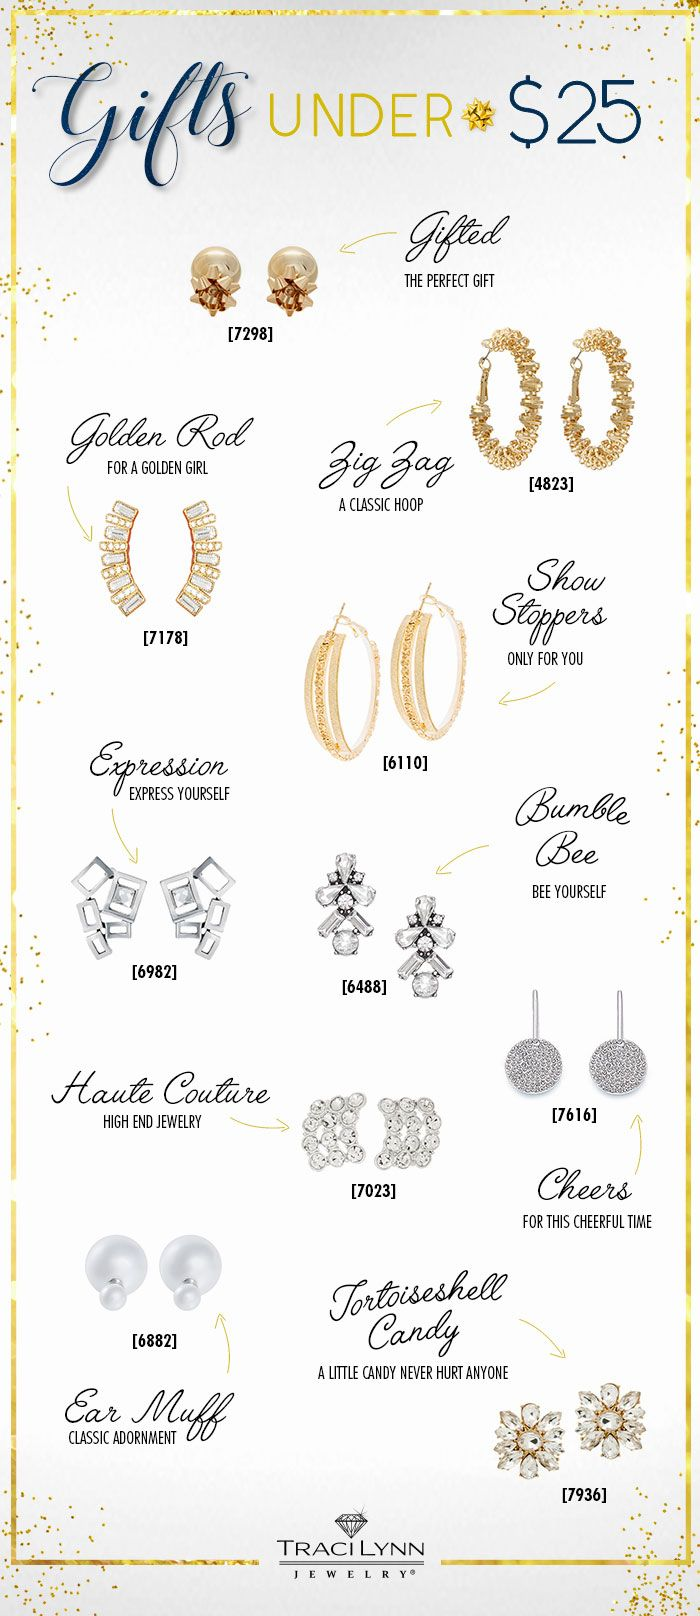 Traci Lynn Fashion Jewelry GIF Guide